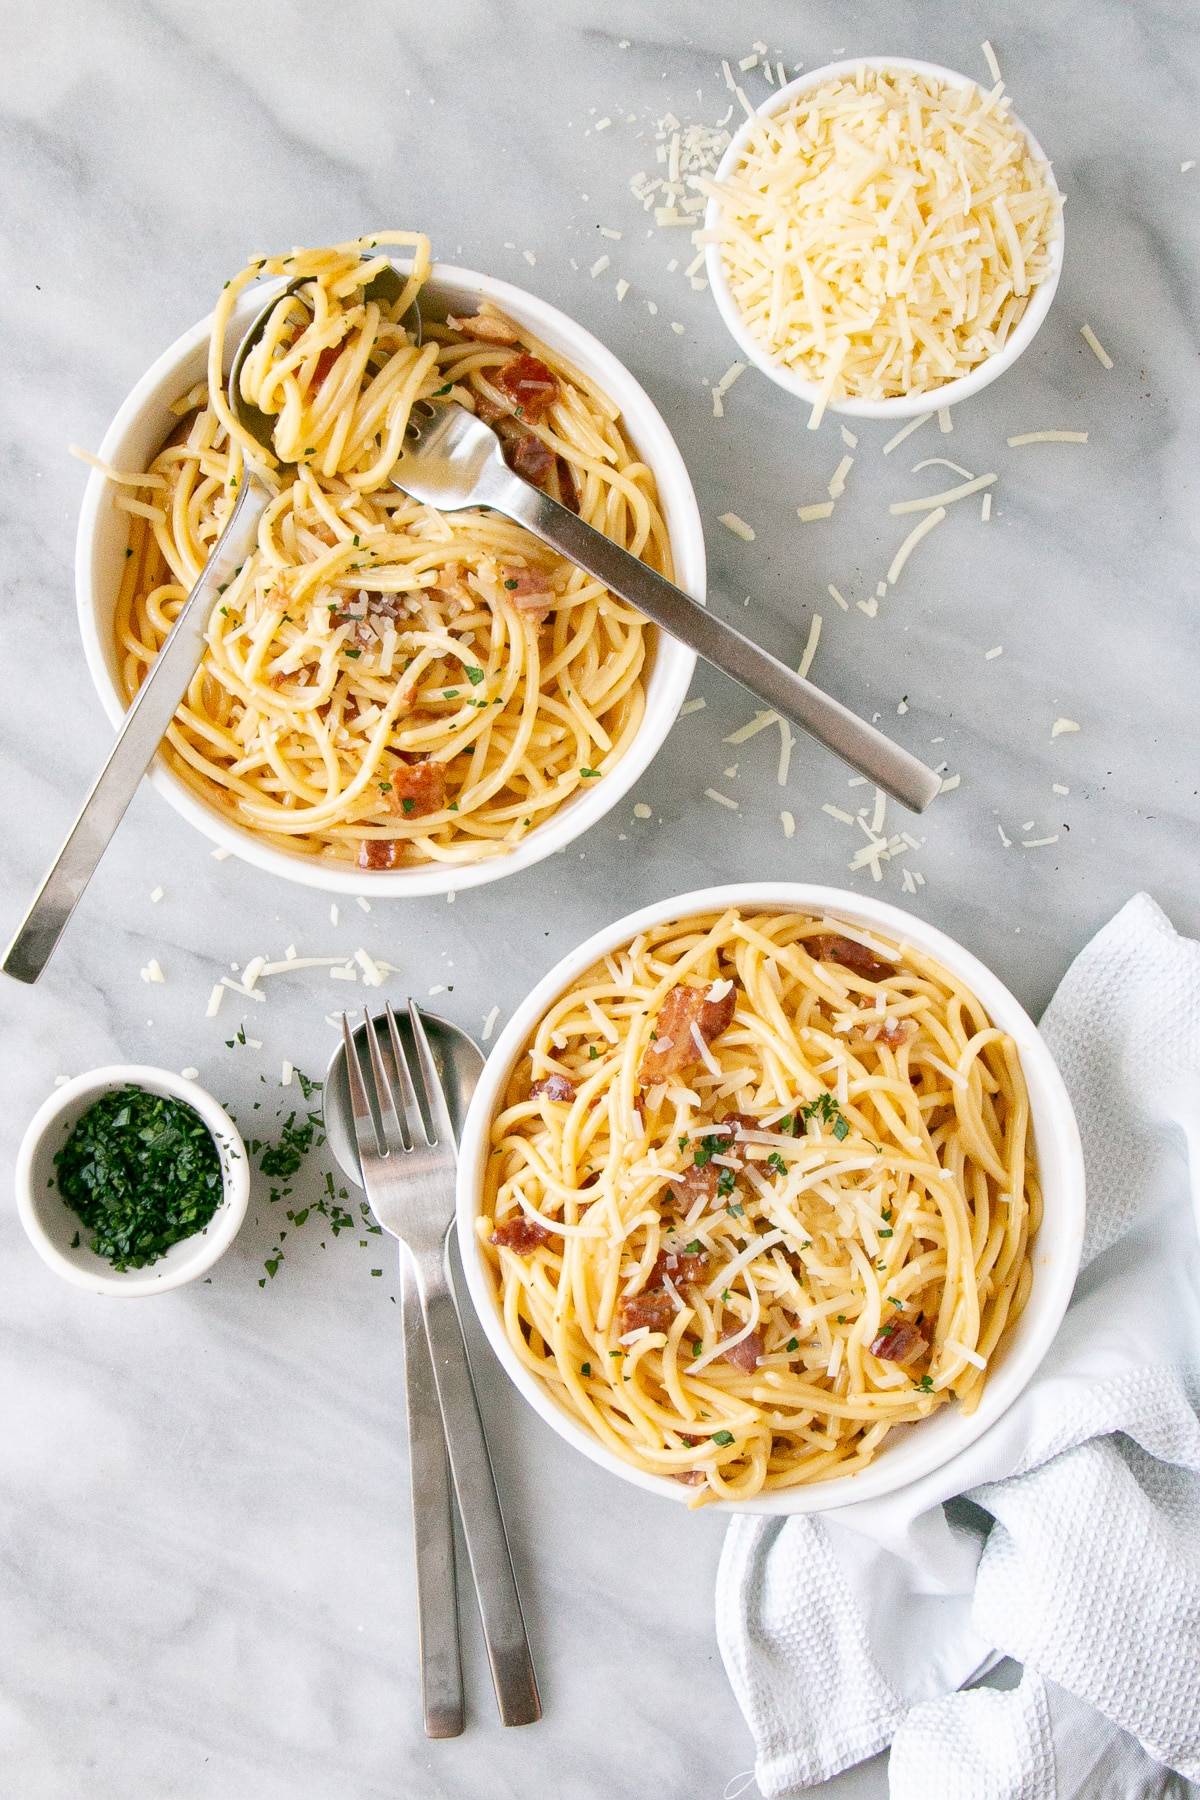 The best Spaghetti Carbonara in a white bowl with parmesan shreds and chopped parsley in small bowls and sprinkled on top.